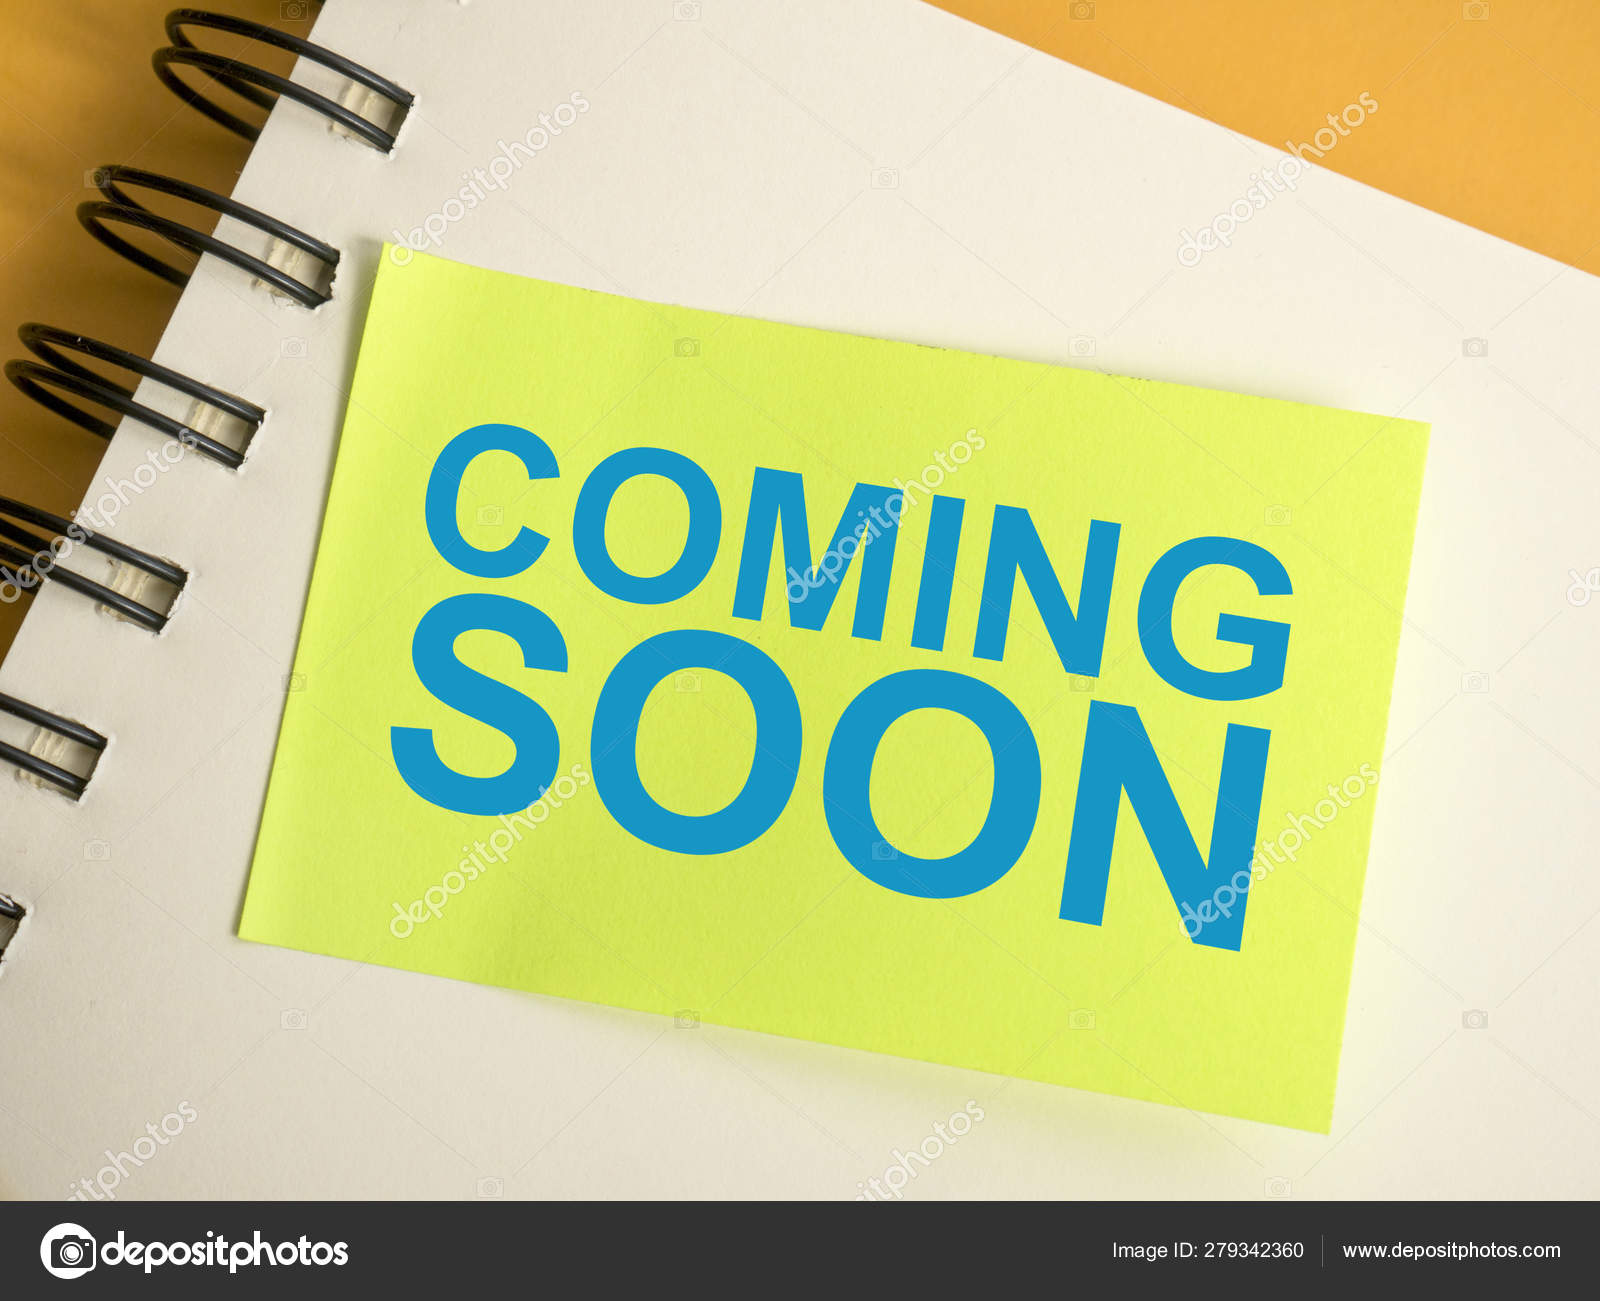 Coming Soon Words Typography Concept Stock Photo C Airdone 279342360